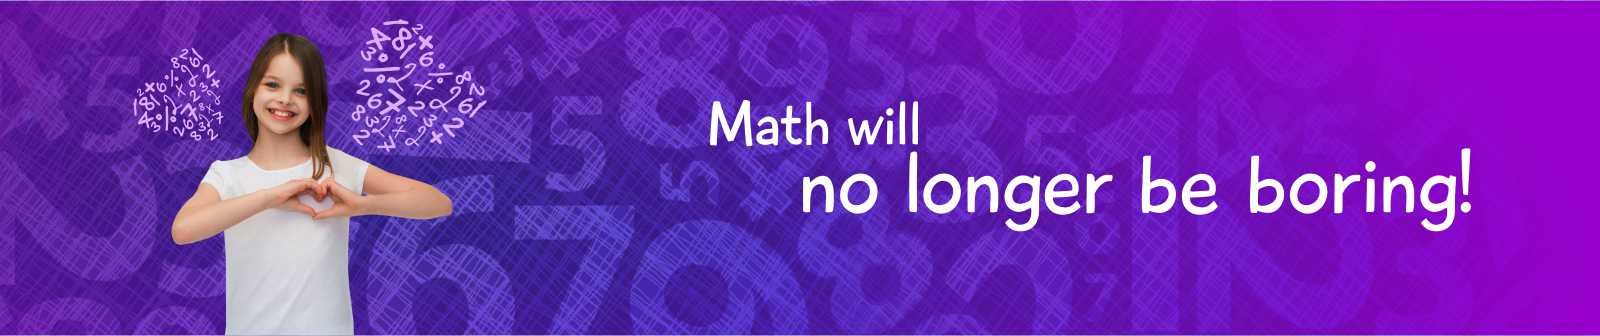 Ways to bid adieu to Mathematics' fear